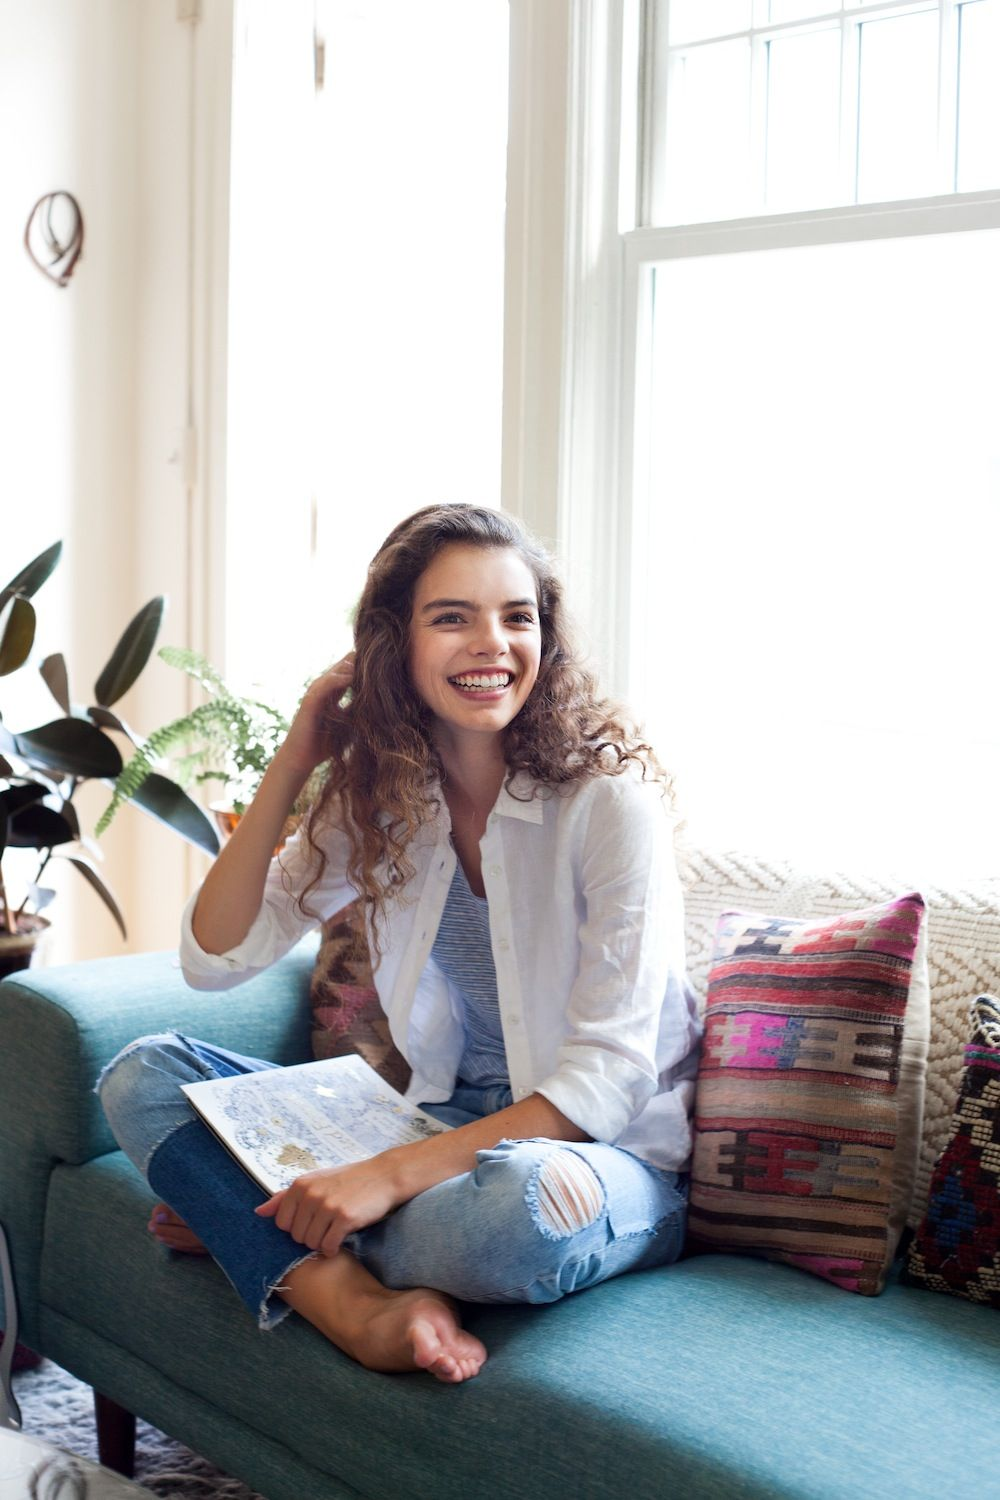 Urban Outfitters - Blog - On Campus with Daisy Chaussee